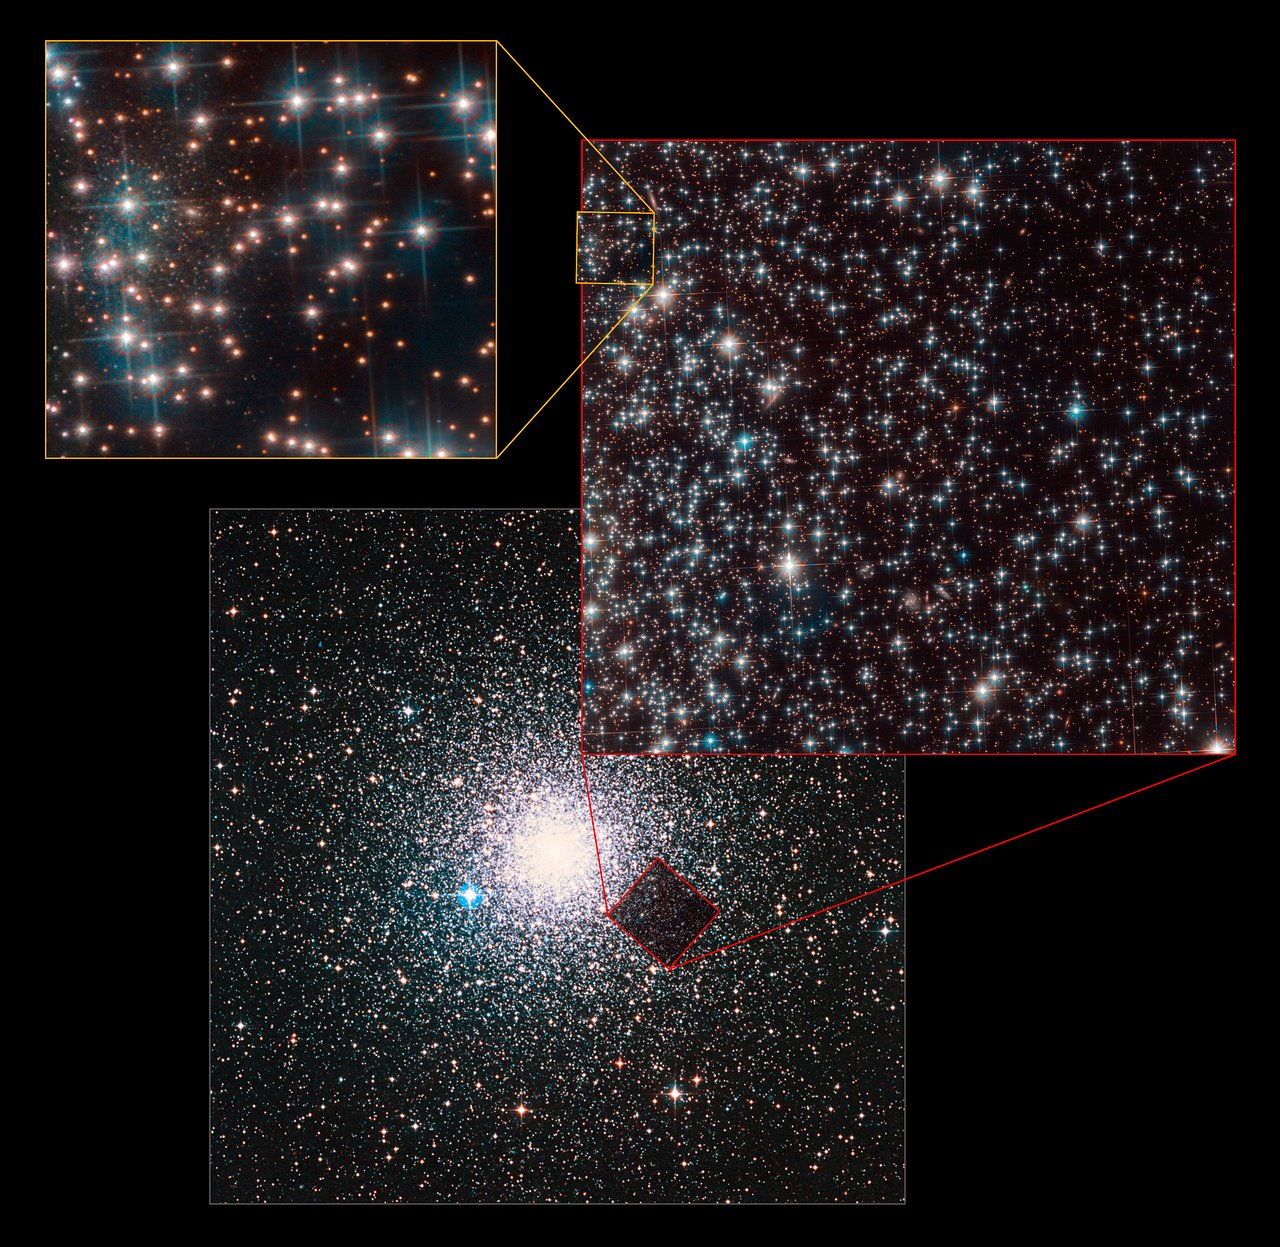 Hubble discovers dwarf galaxy in cosmic neighbourhood